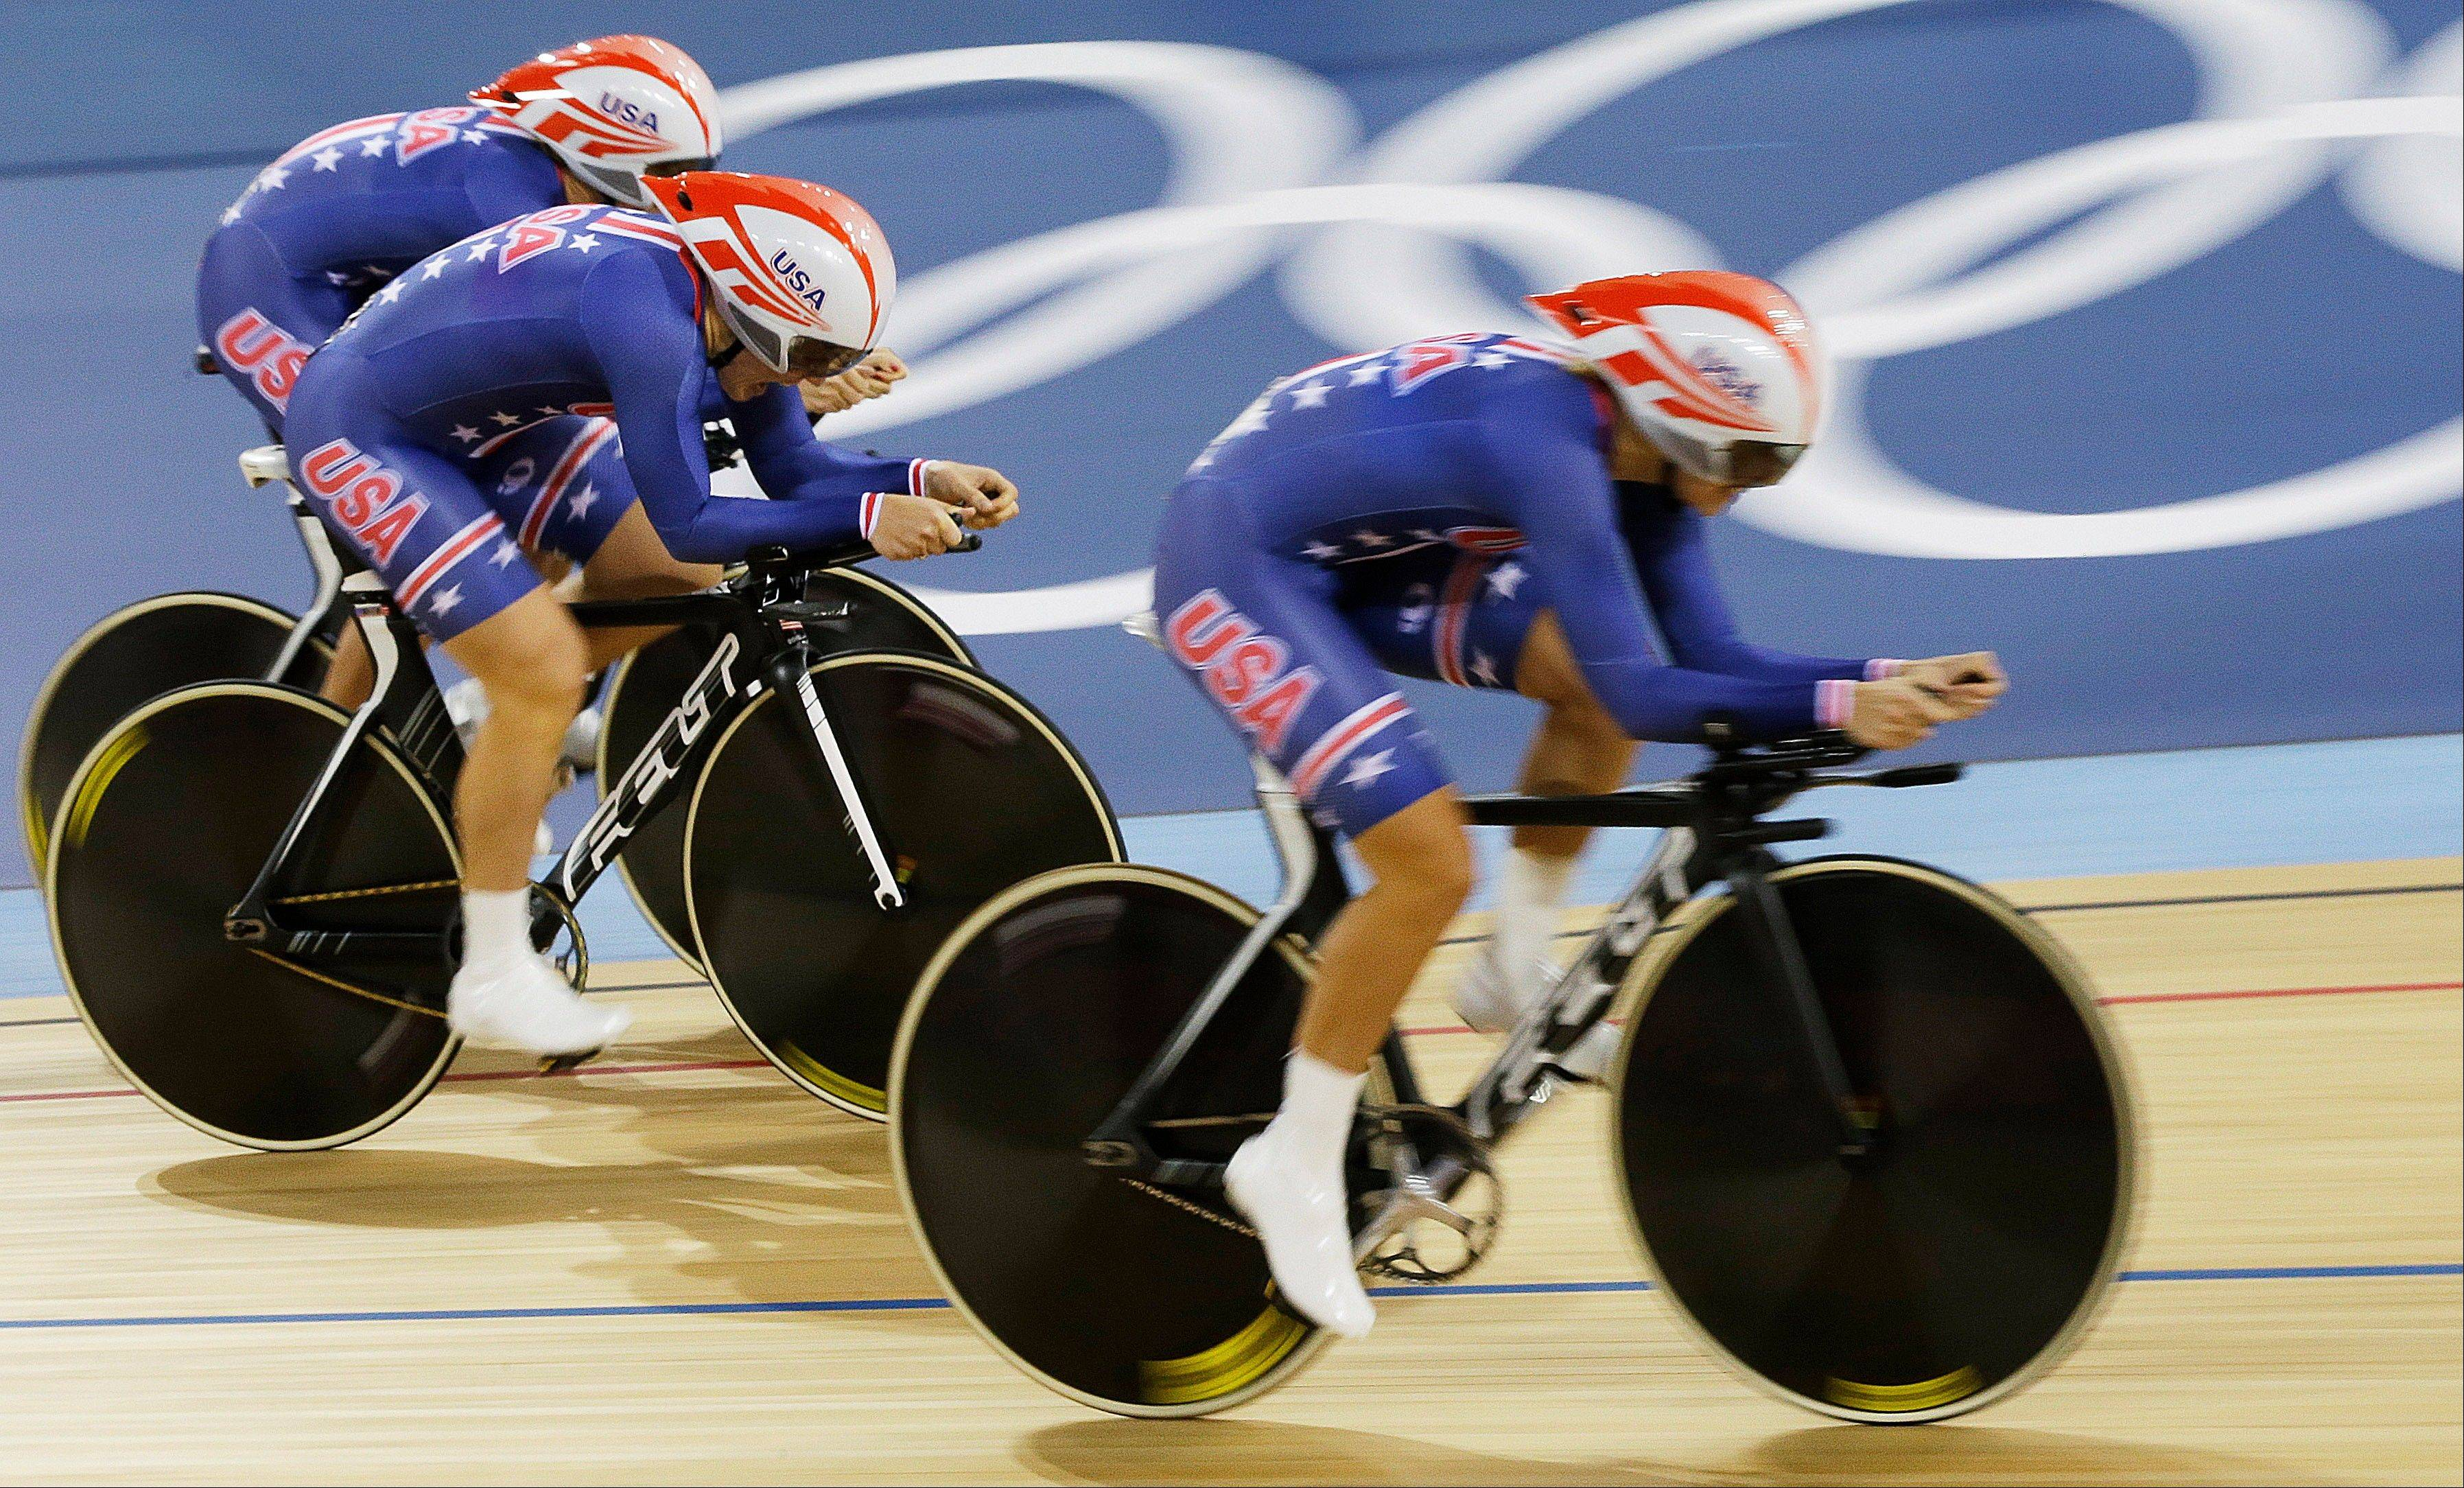 The United States' team competes during a women's pursuit team track cycling event in the velodrome during the 2012 Summer Olympics, Saturday, Aug. 4, 2012, in London.